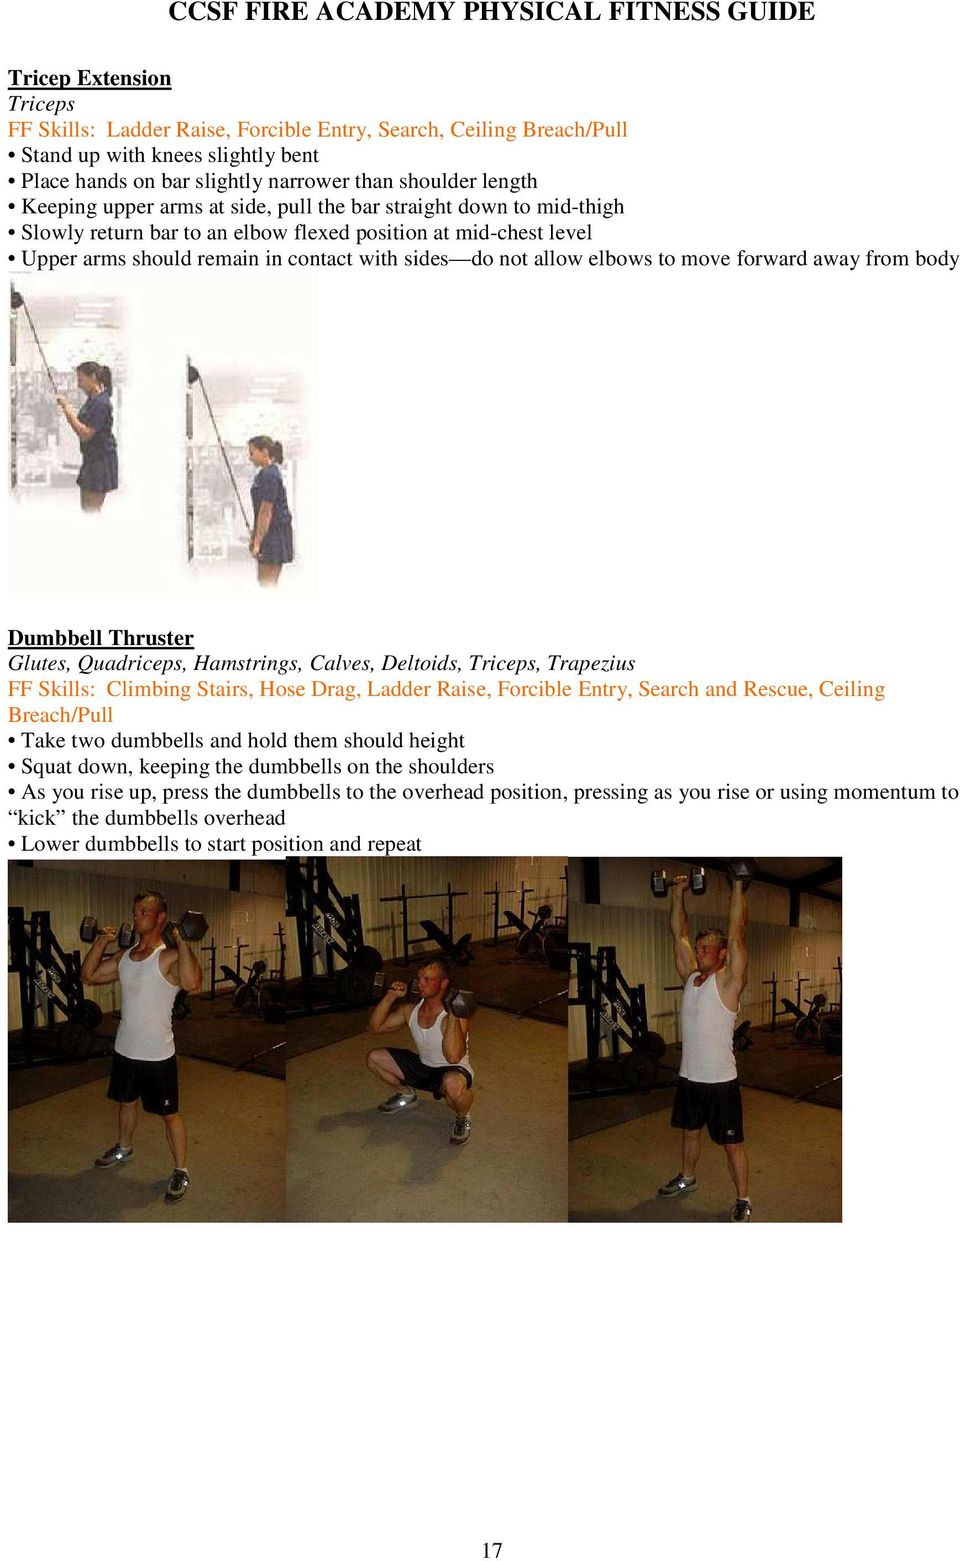 forward away from body Dumbbell Thruster Glutes, Quadriceps, Hamstrings, Calves, Deltoids, Triceps, Trapezius FF Skills: Climbing Stairs, Hose Drag, Ladder Raise, Forcible Entry, Search and Rescue,